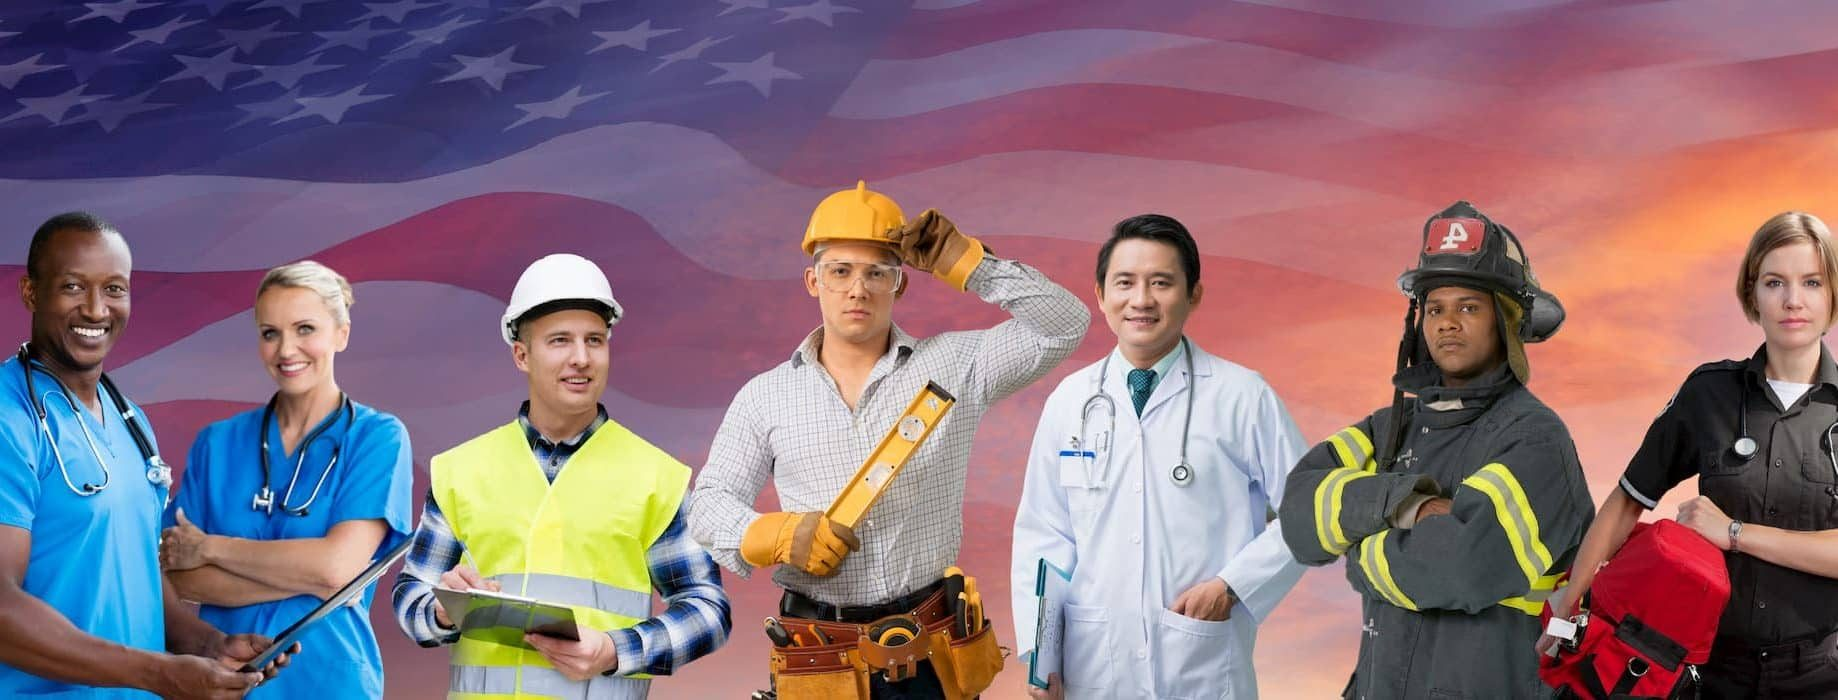 Safety & Health Training & Certification